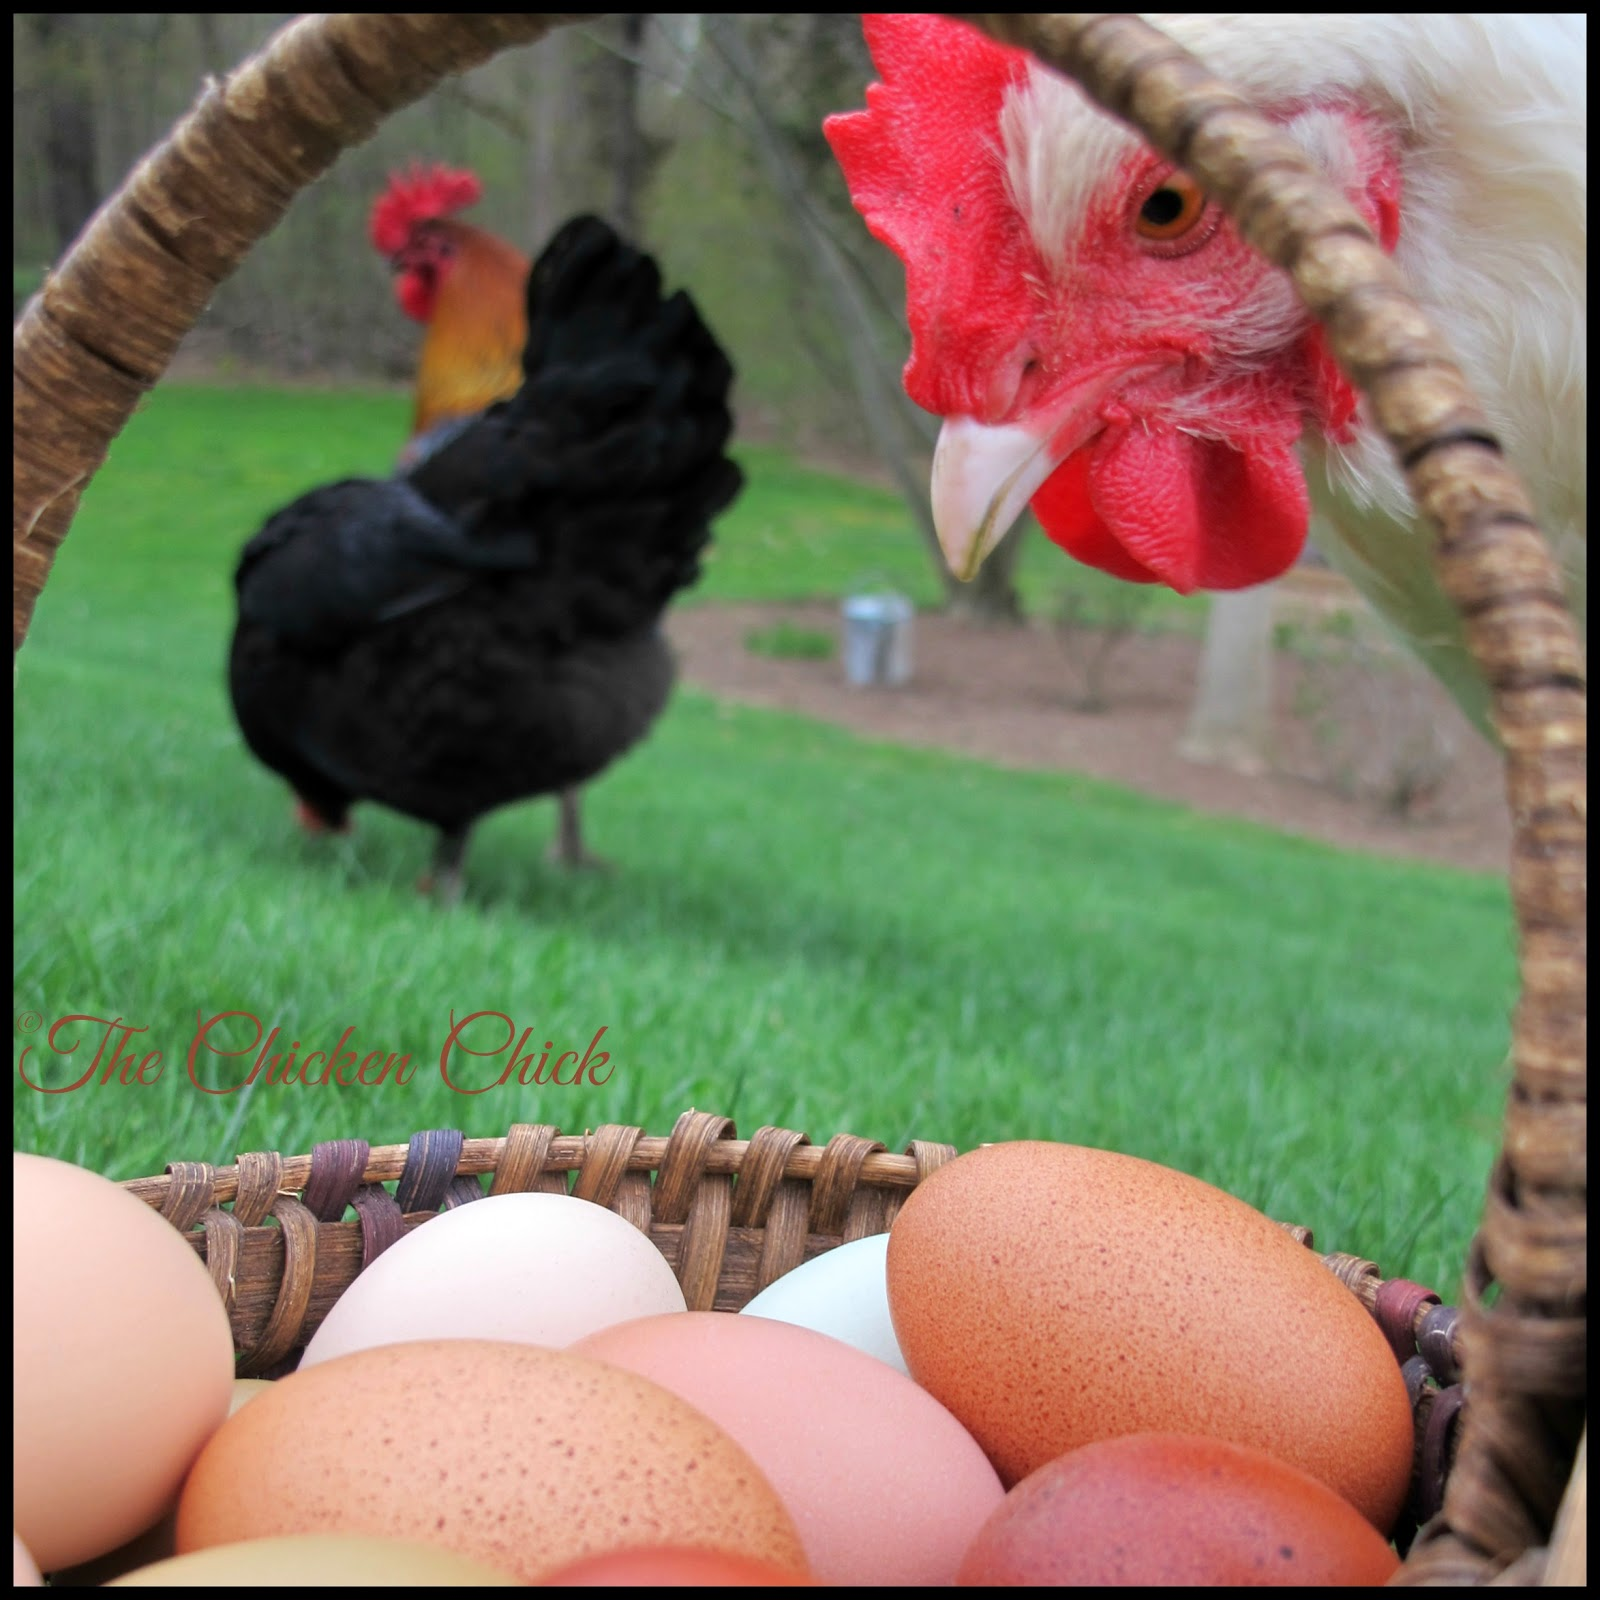 A hen does not need a rooster to produce eggs. A hen will lay eggs with the same frequency regardless of the presence or absence of  a rooster in the flock.